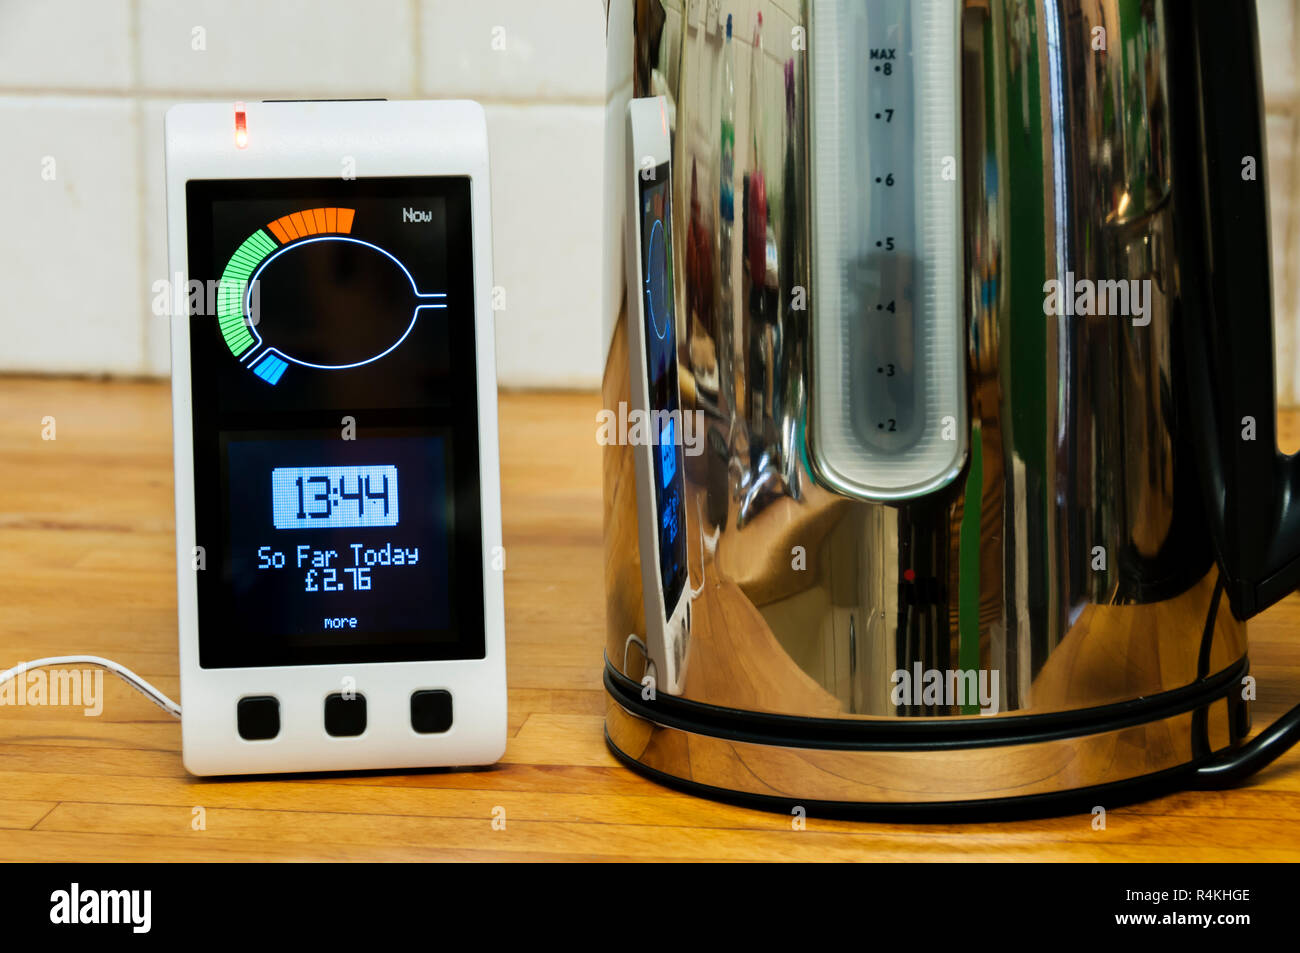 A Geo Smart Meter provided by EDF Energy in a domestic kitchen.  Shows cost of energy consumed during day. - Stock Image